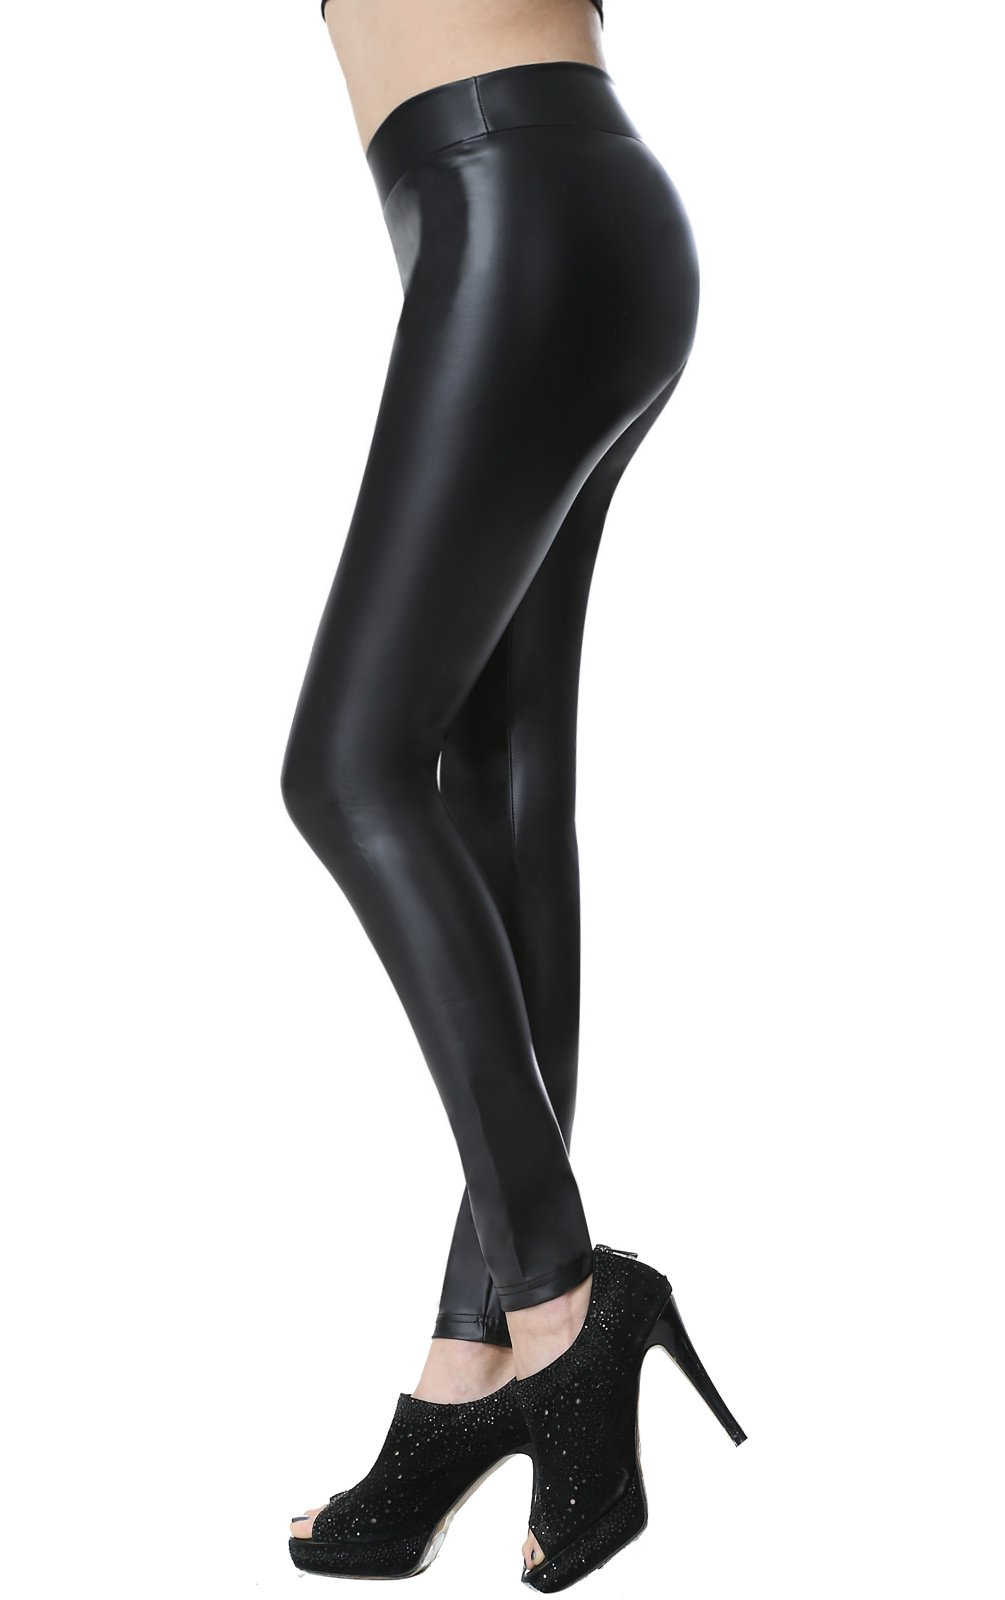 Everbellus Sexy Black Faux Leather Leggings for Women Fashion Pants Black Small